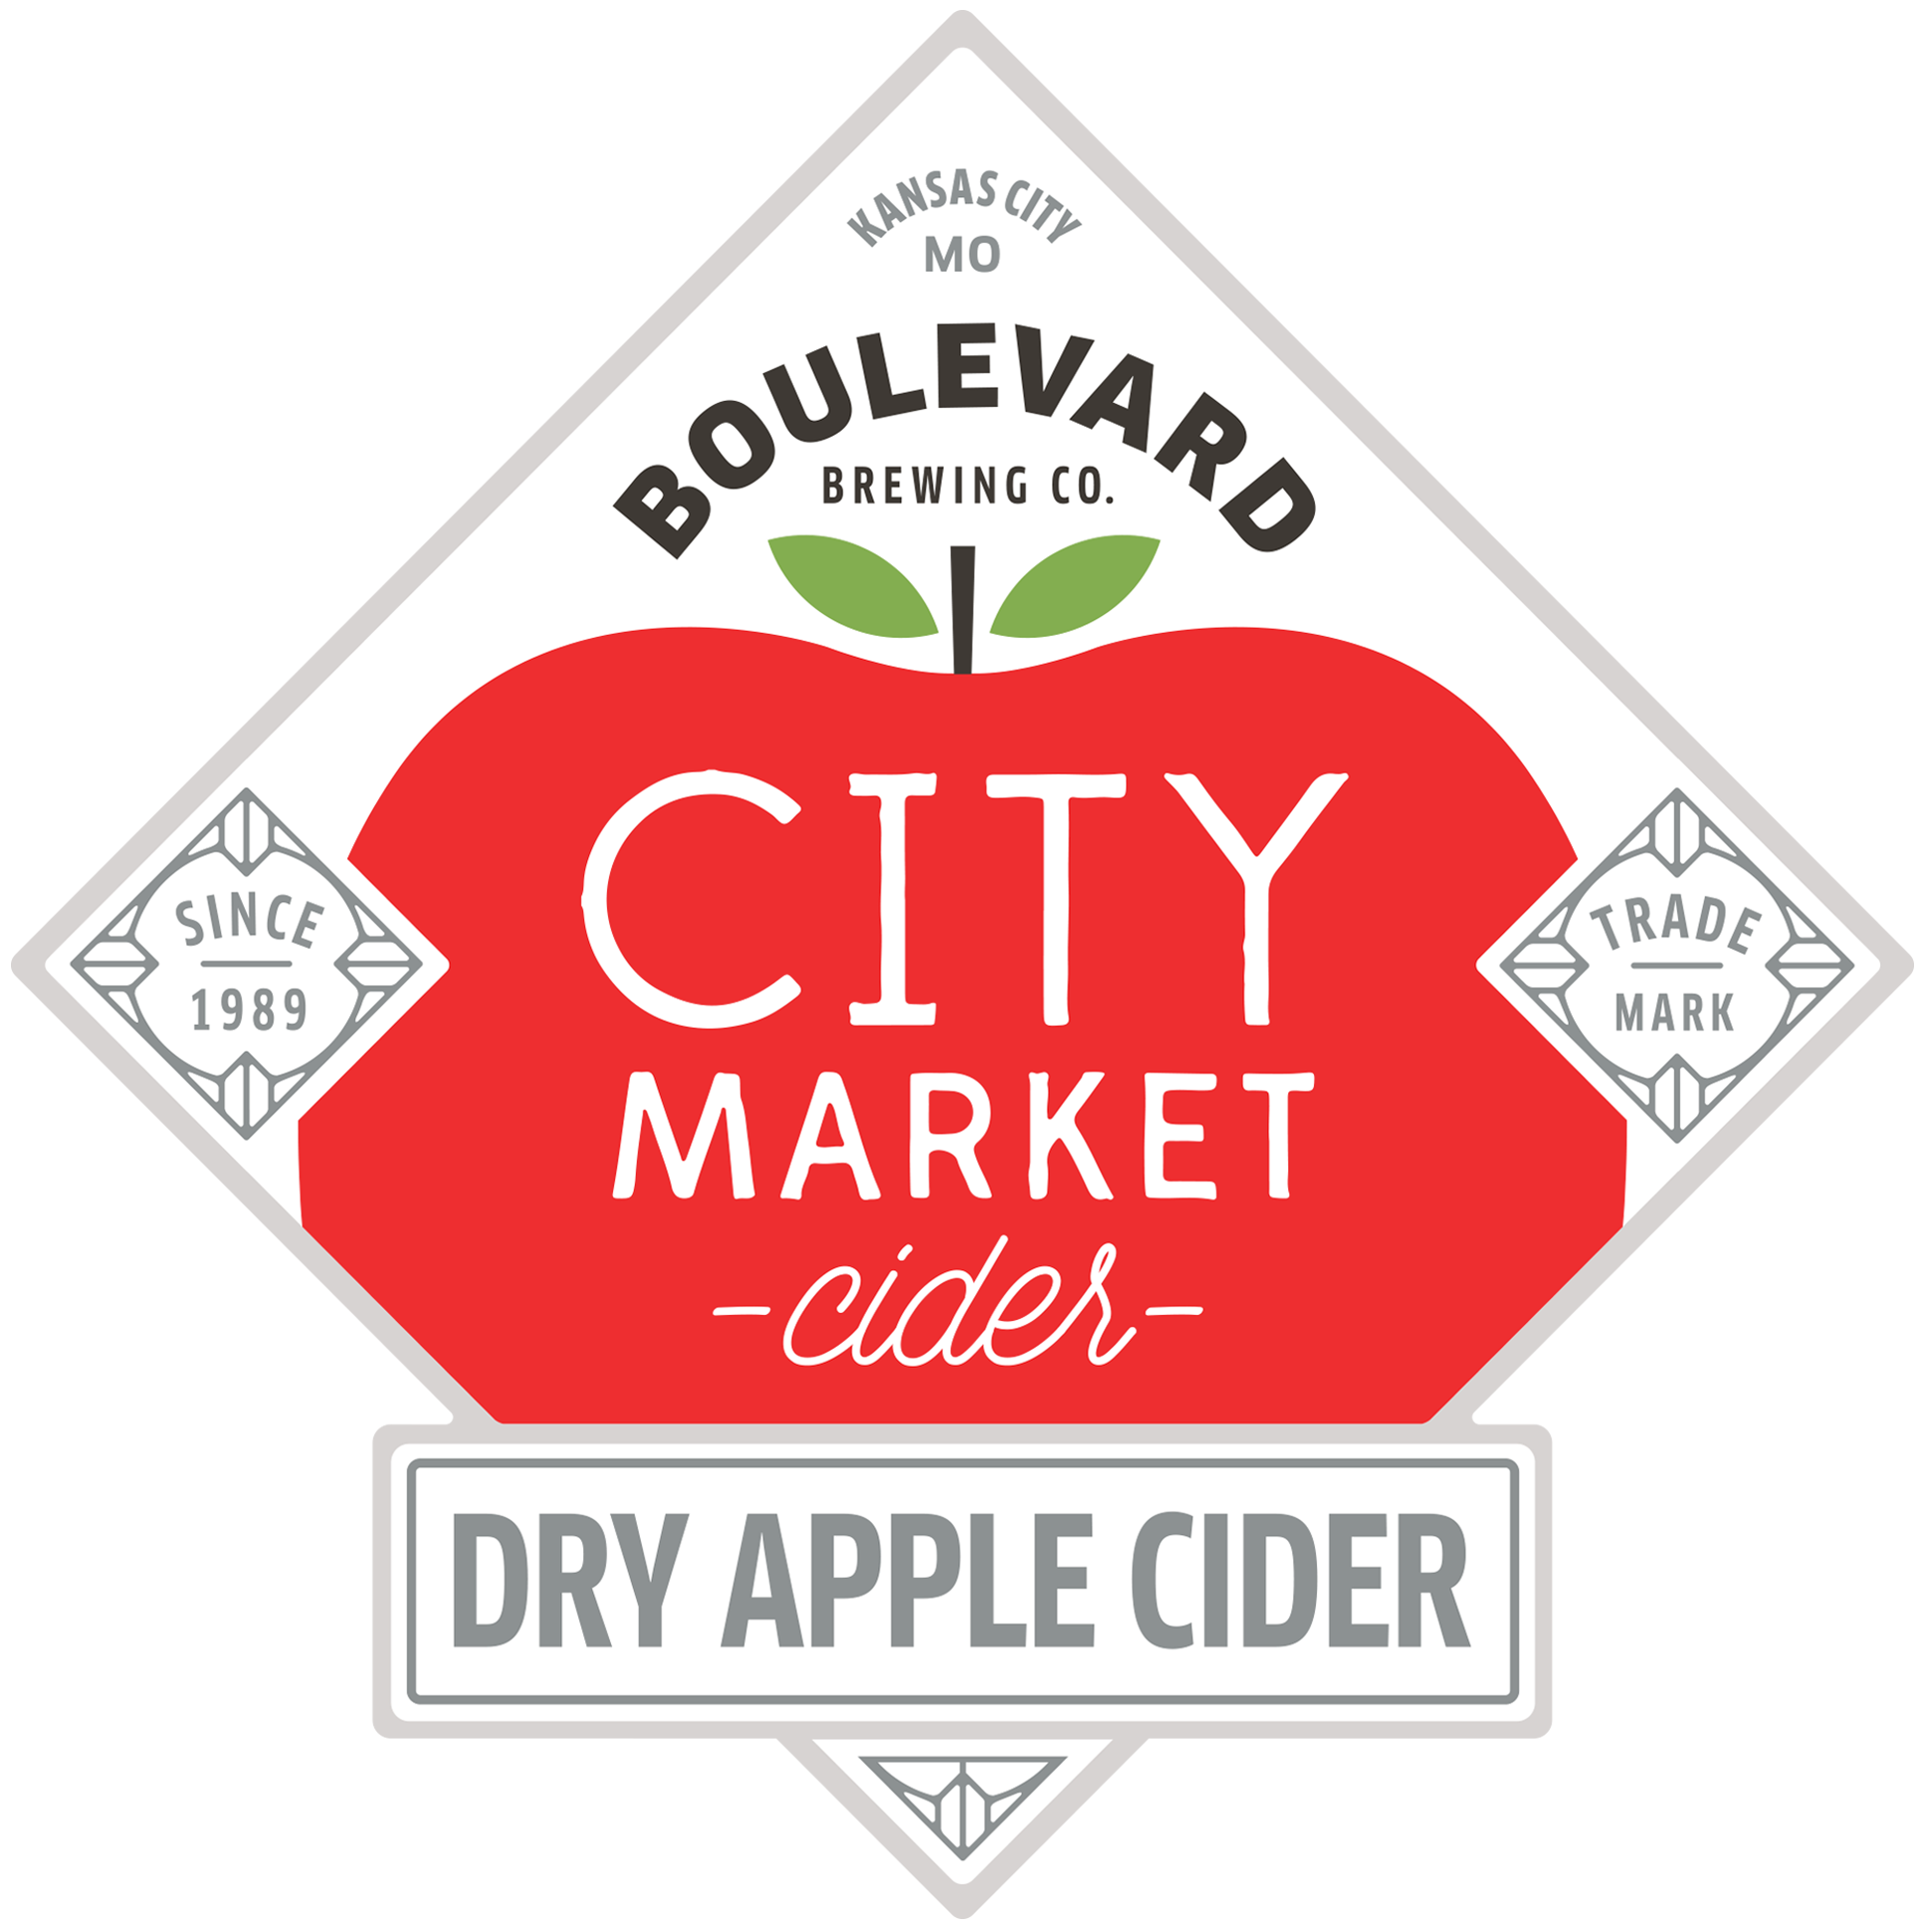 City Market Cider